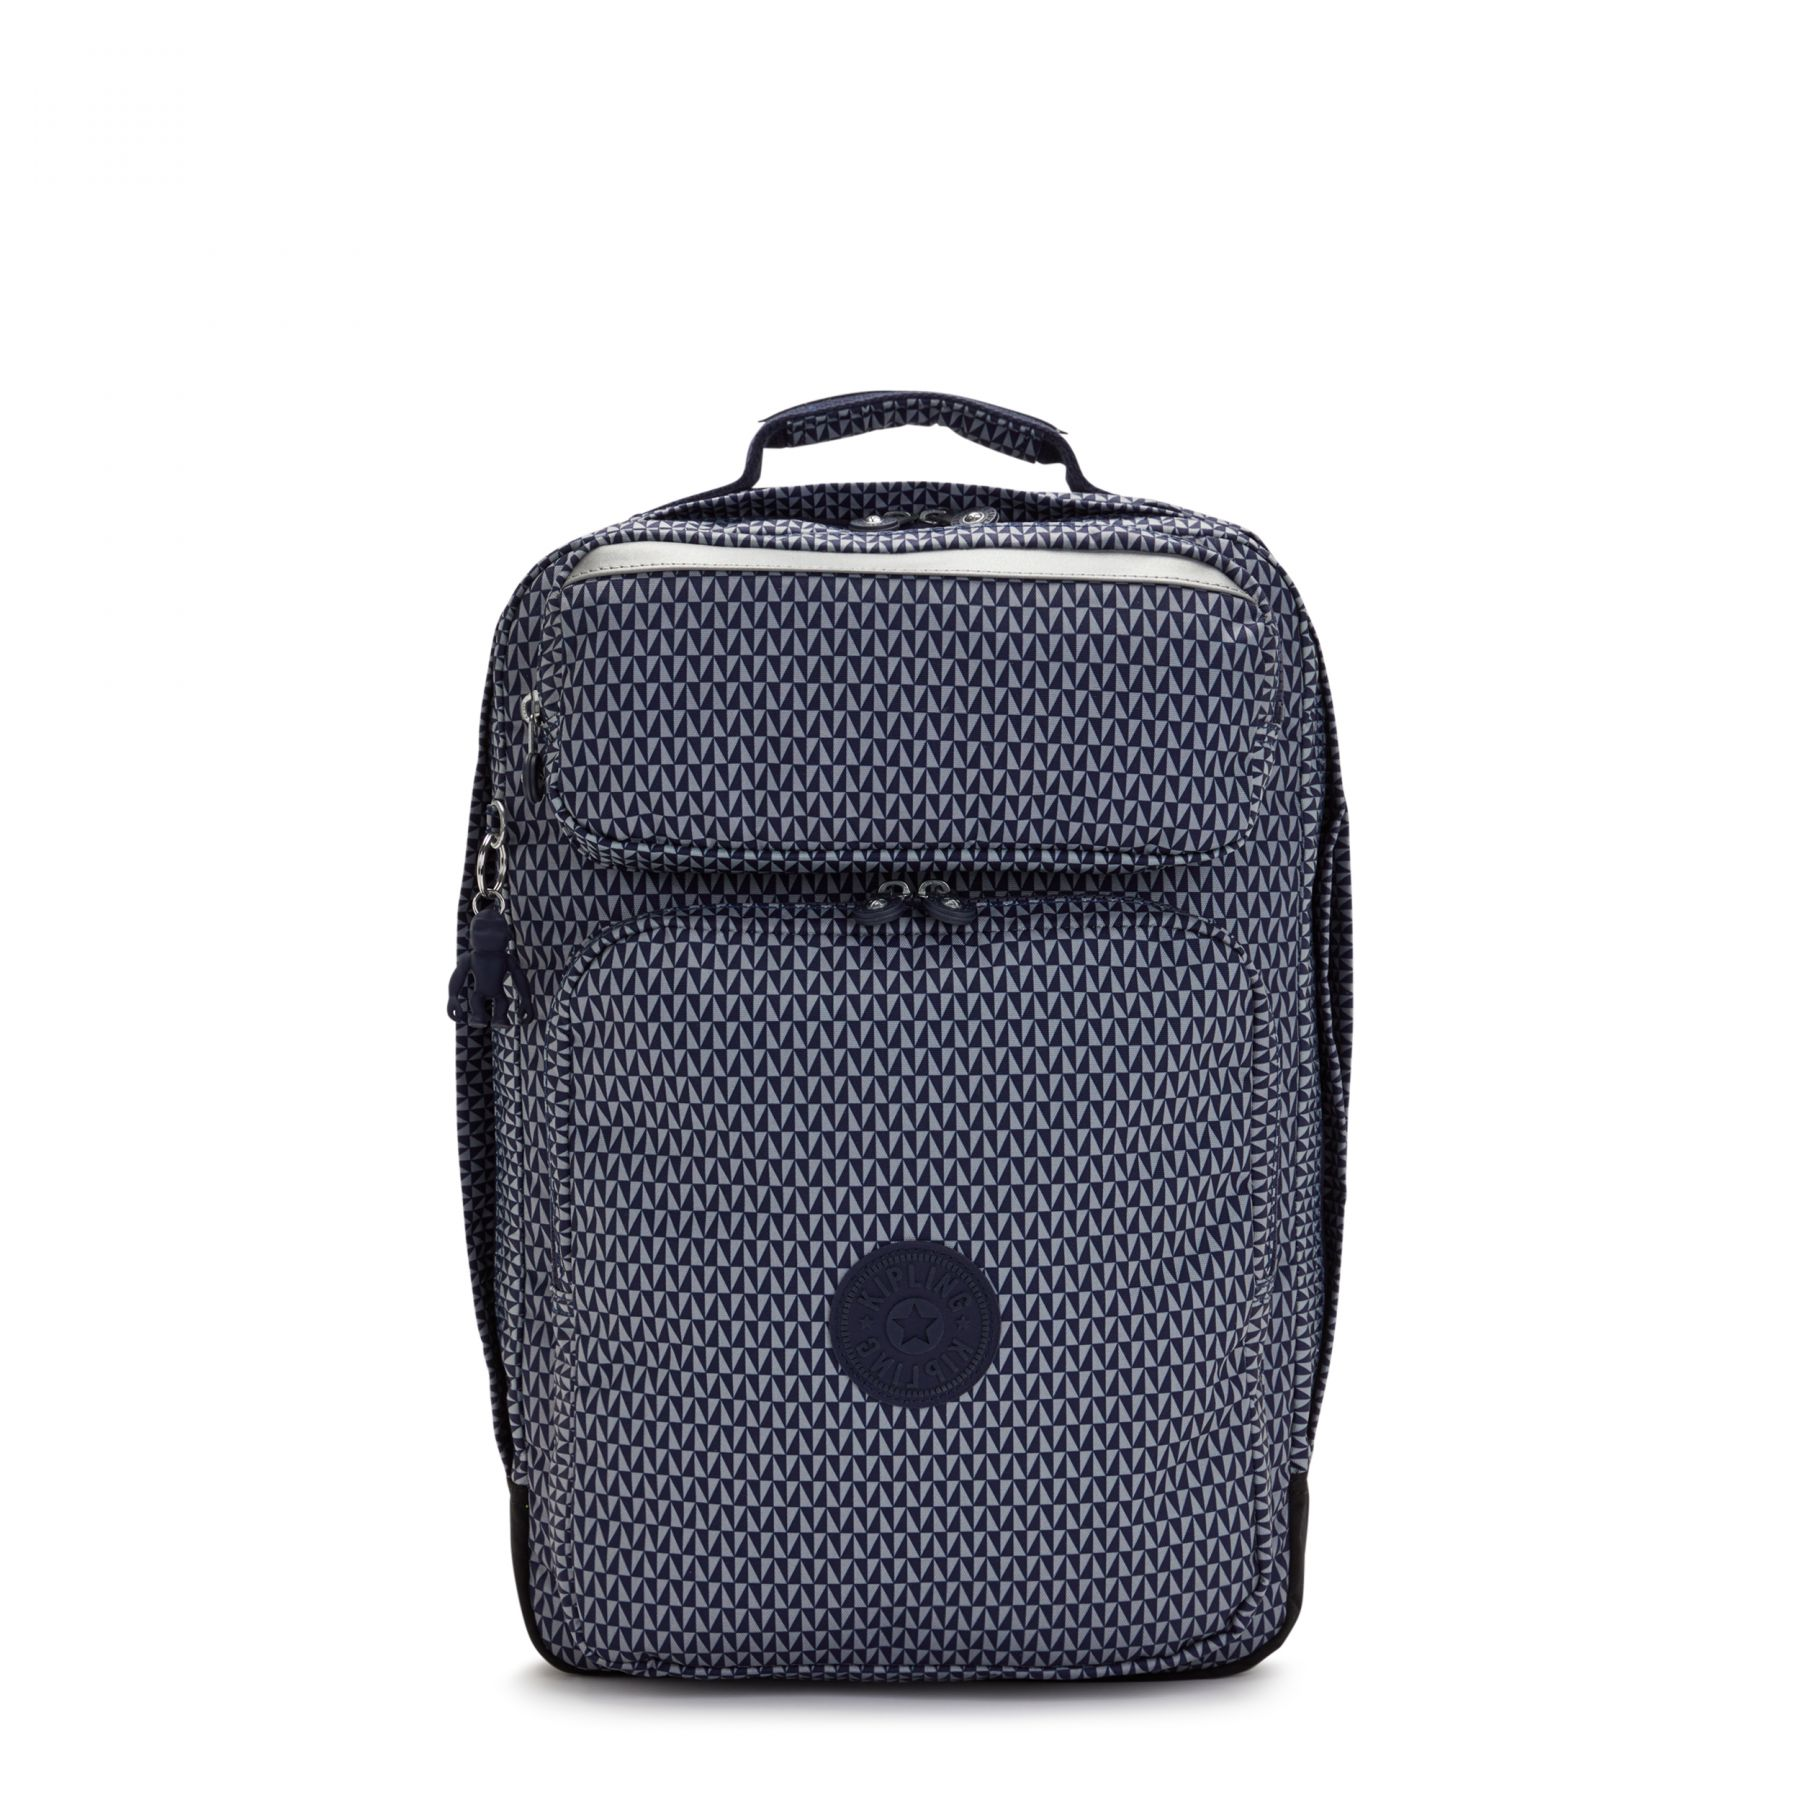 SCOTTY SCHOOL BAGS by Kipling - Front view